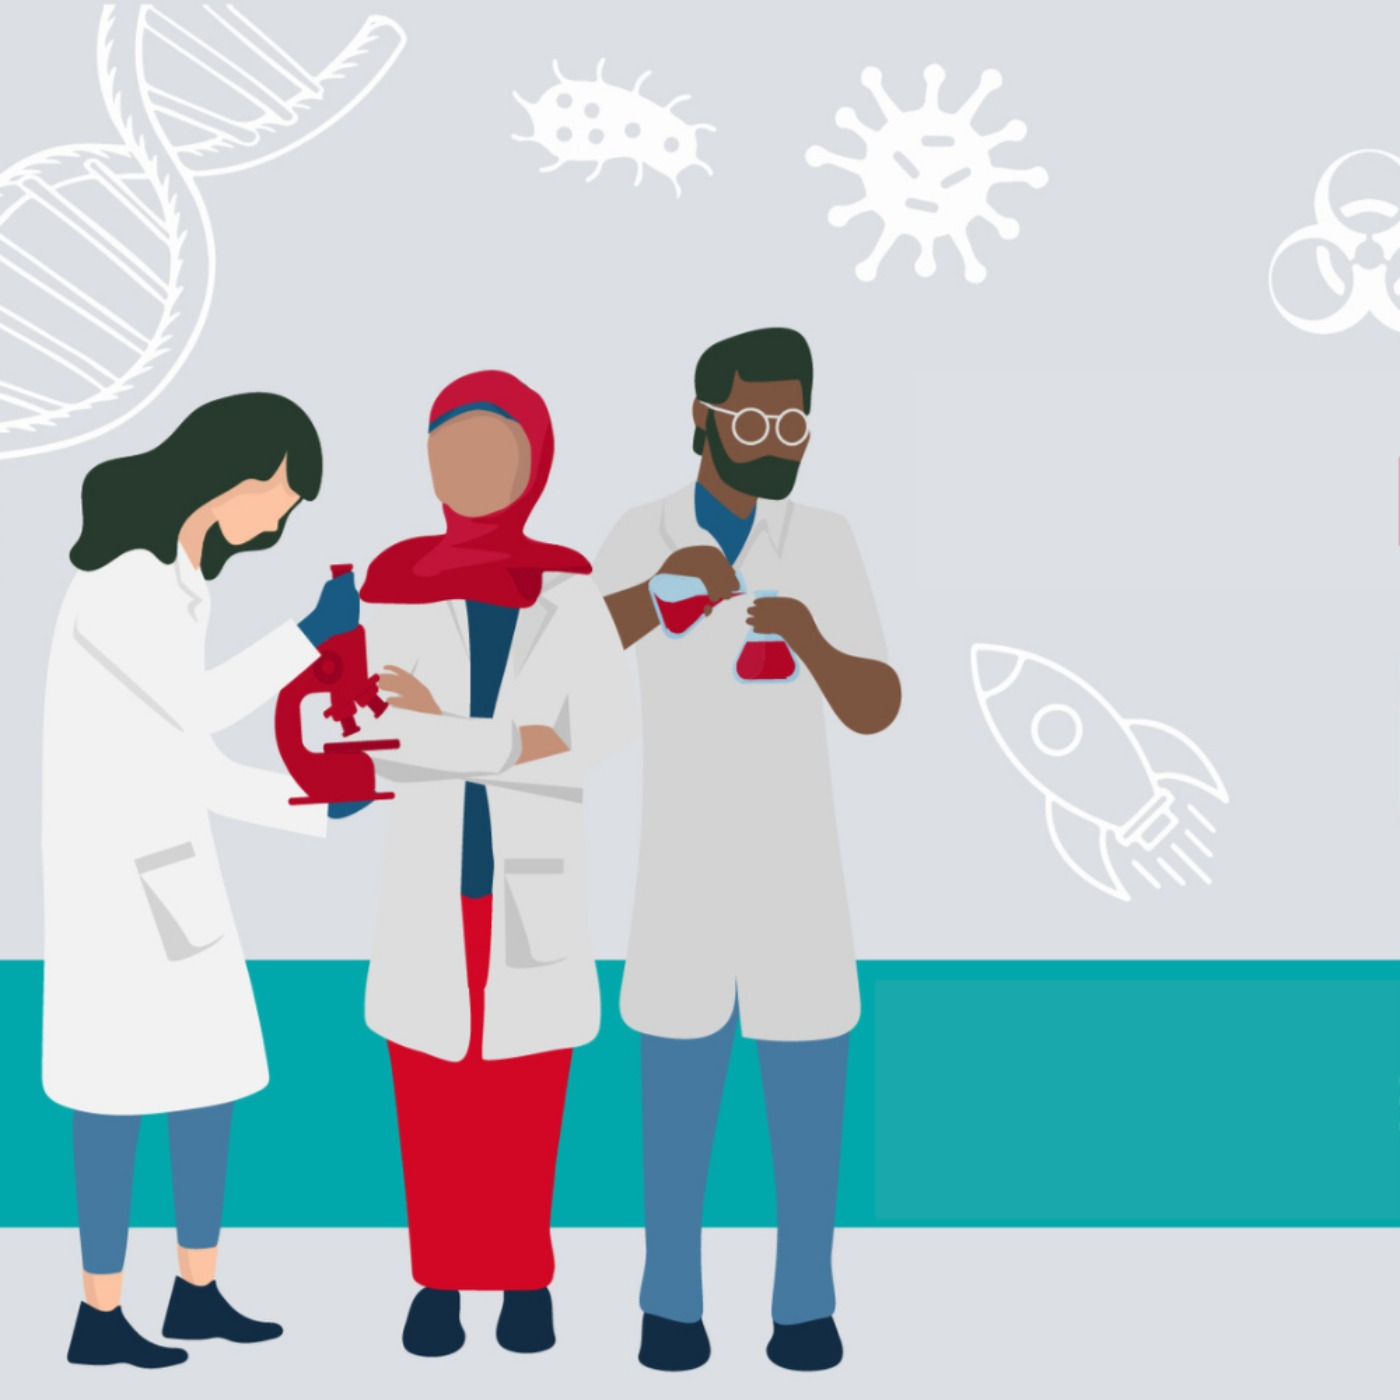 How can we achieve gender equality in STEM?